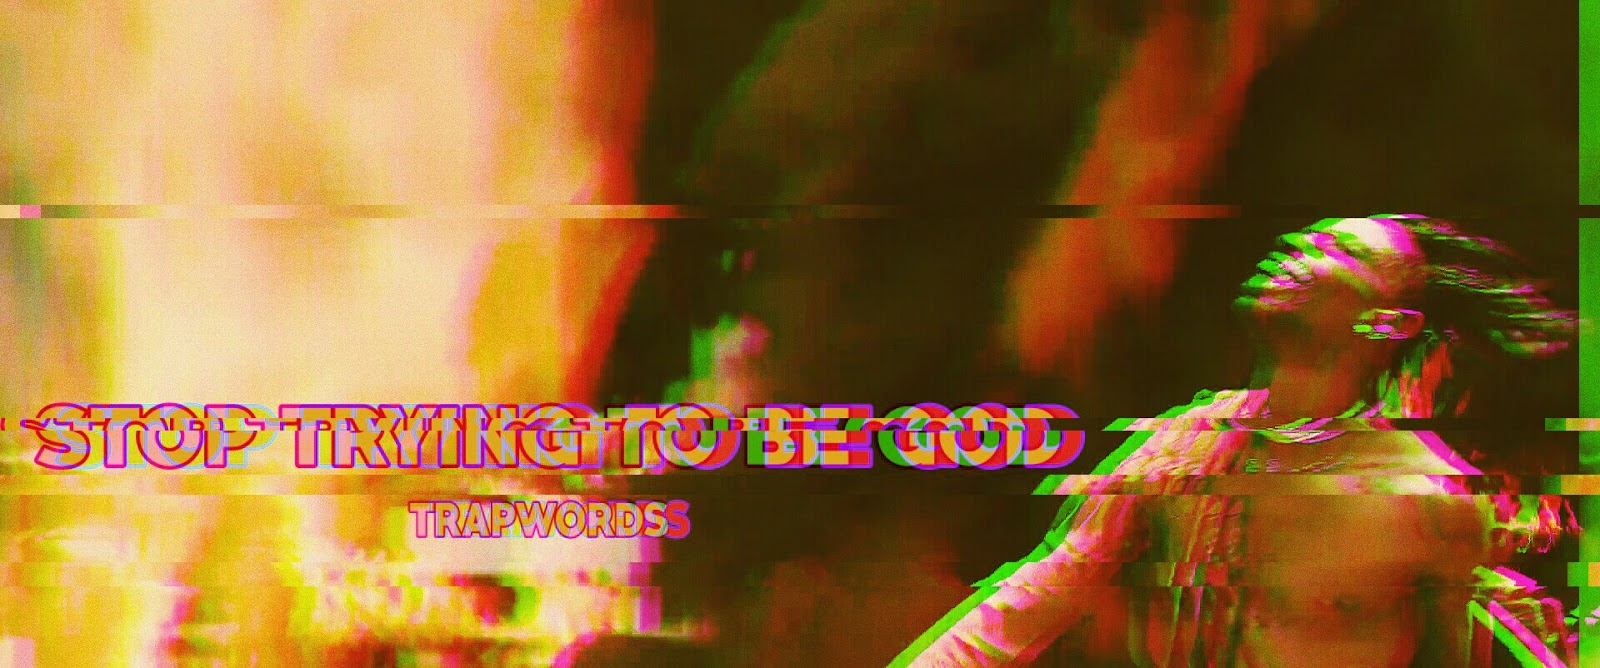 Travis Scott stop trying to be god video song edits and lyrics